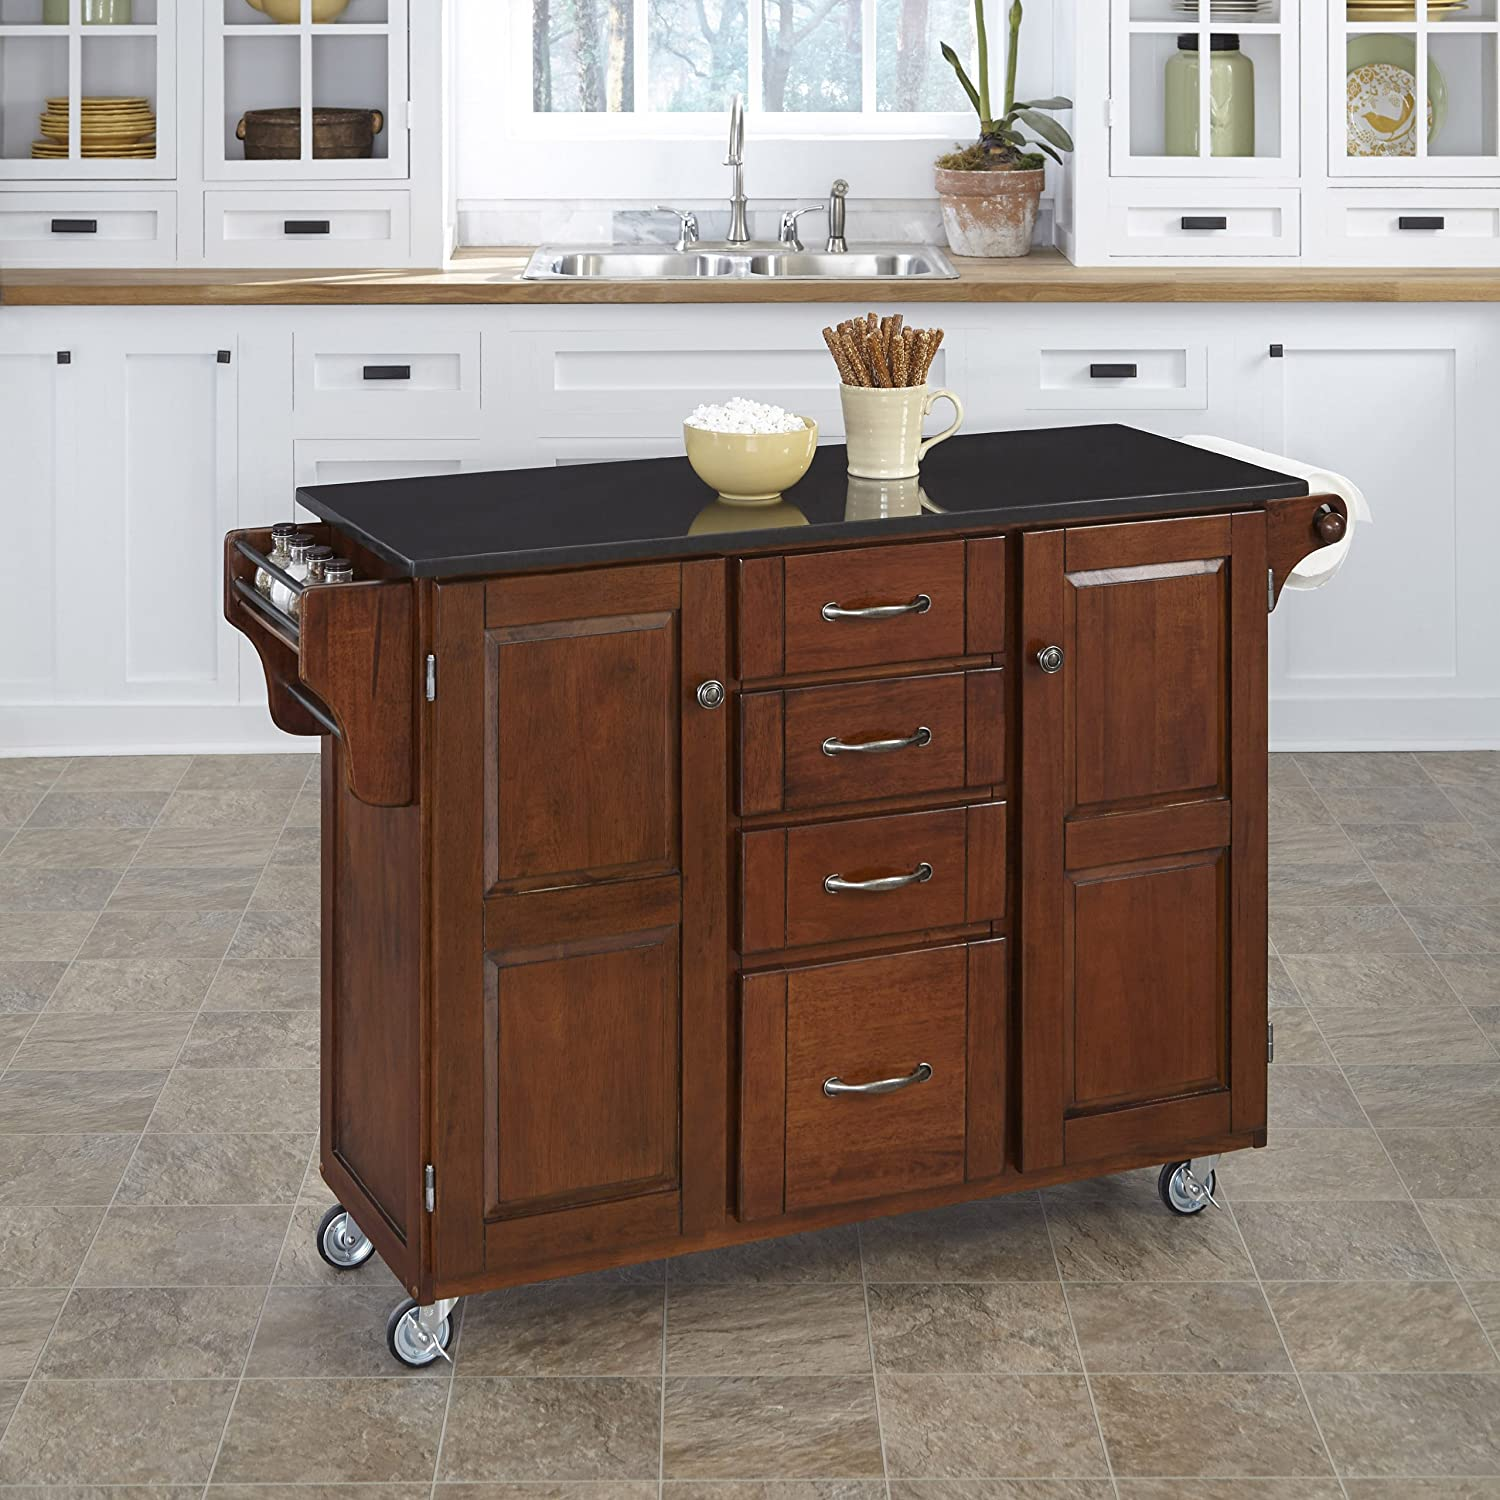 amazon com home styles 9100 1074 create a cart 9100 series amazon com home styles 9100 1074 create a cart 9100 series cabinet kitchen cart with black granite top medium cherry finish kitchen islands carts